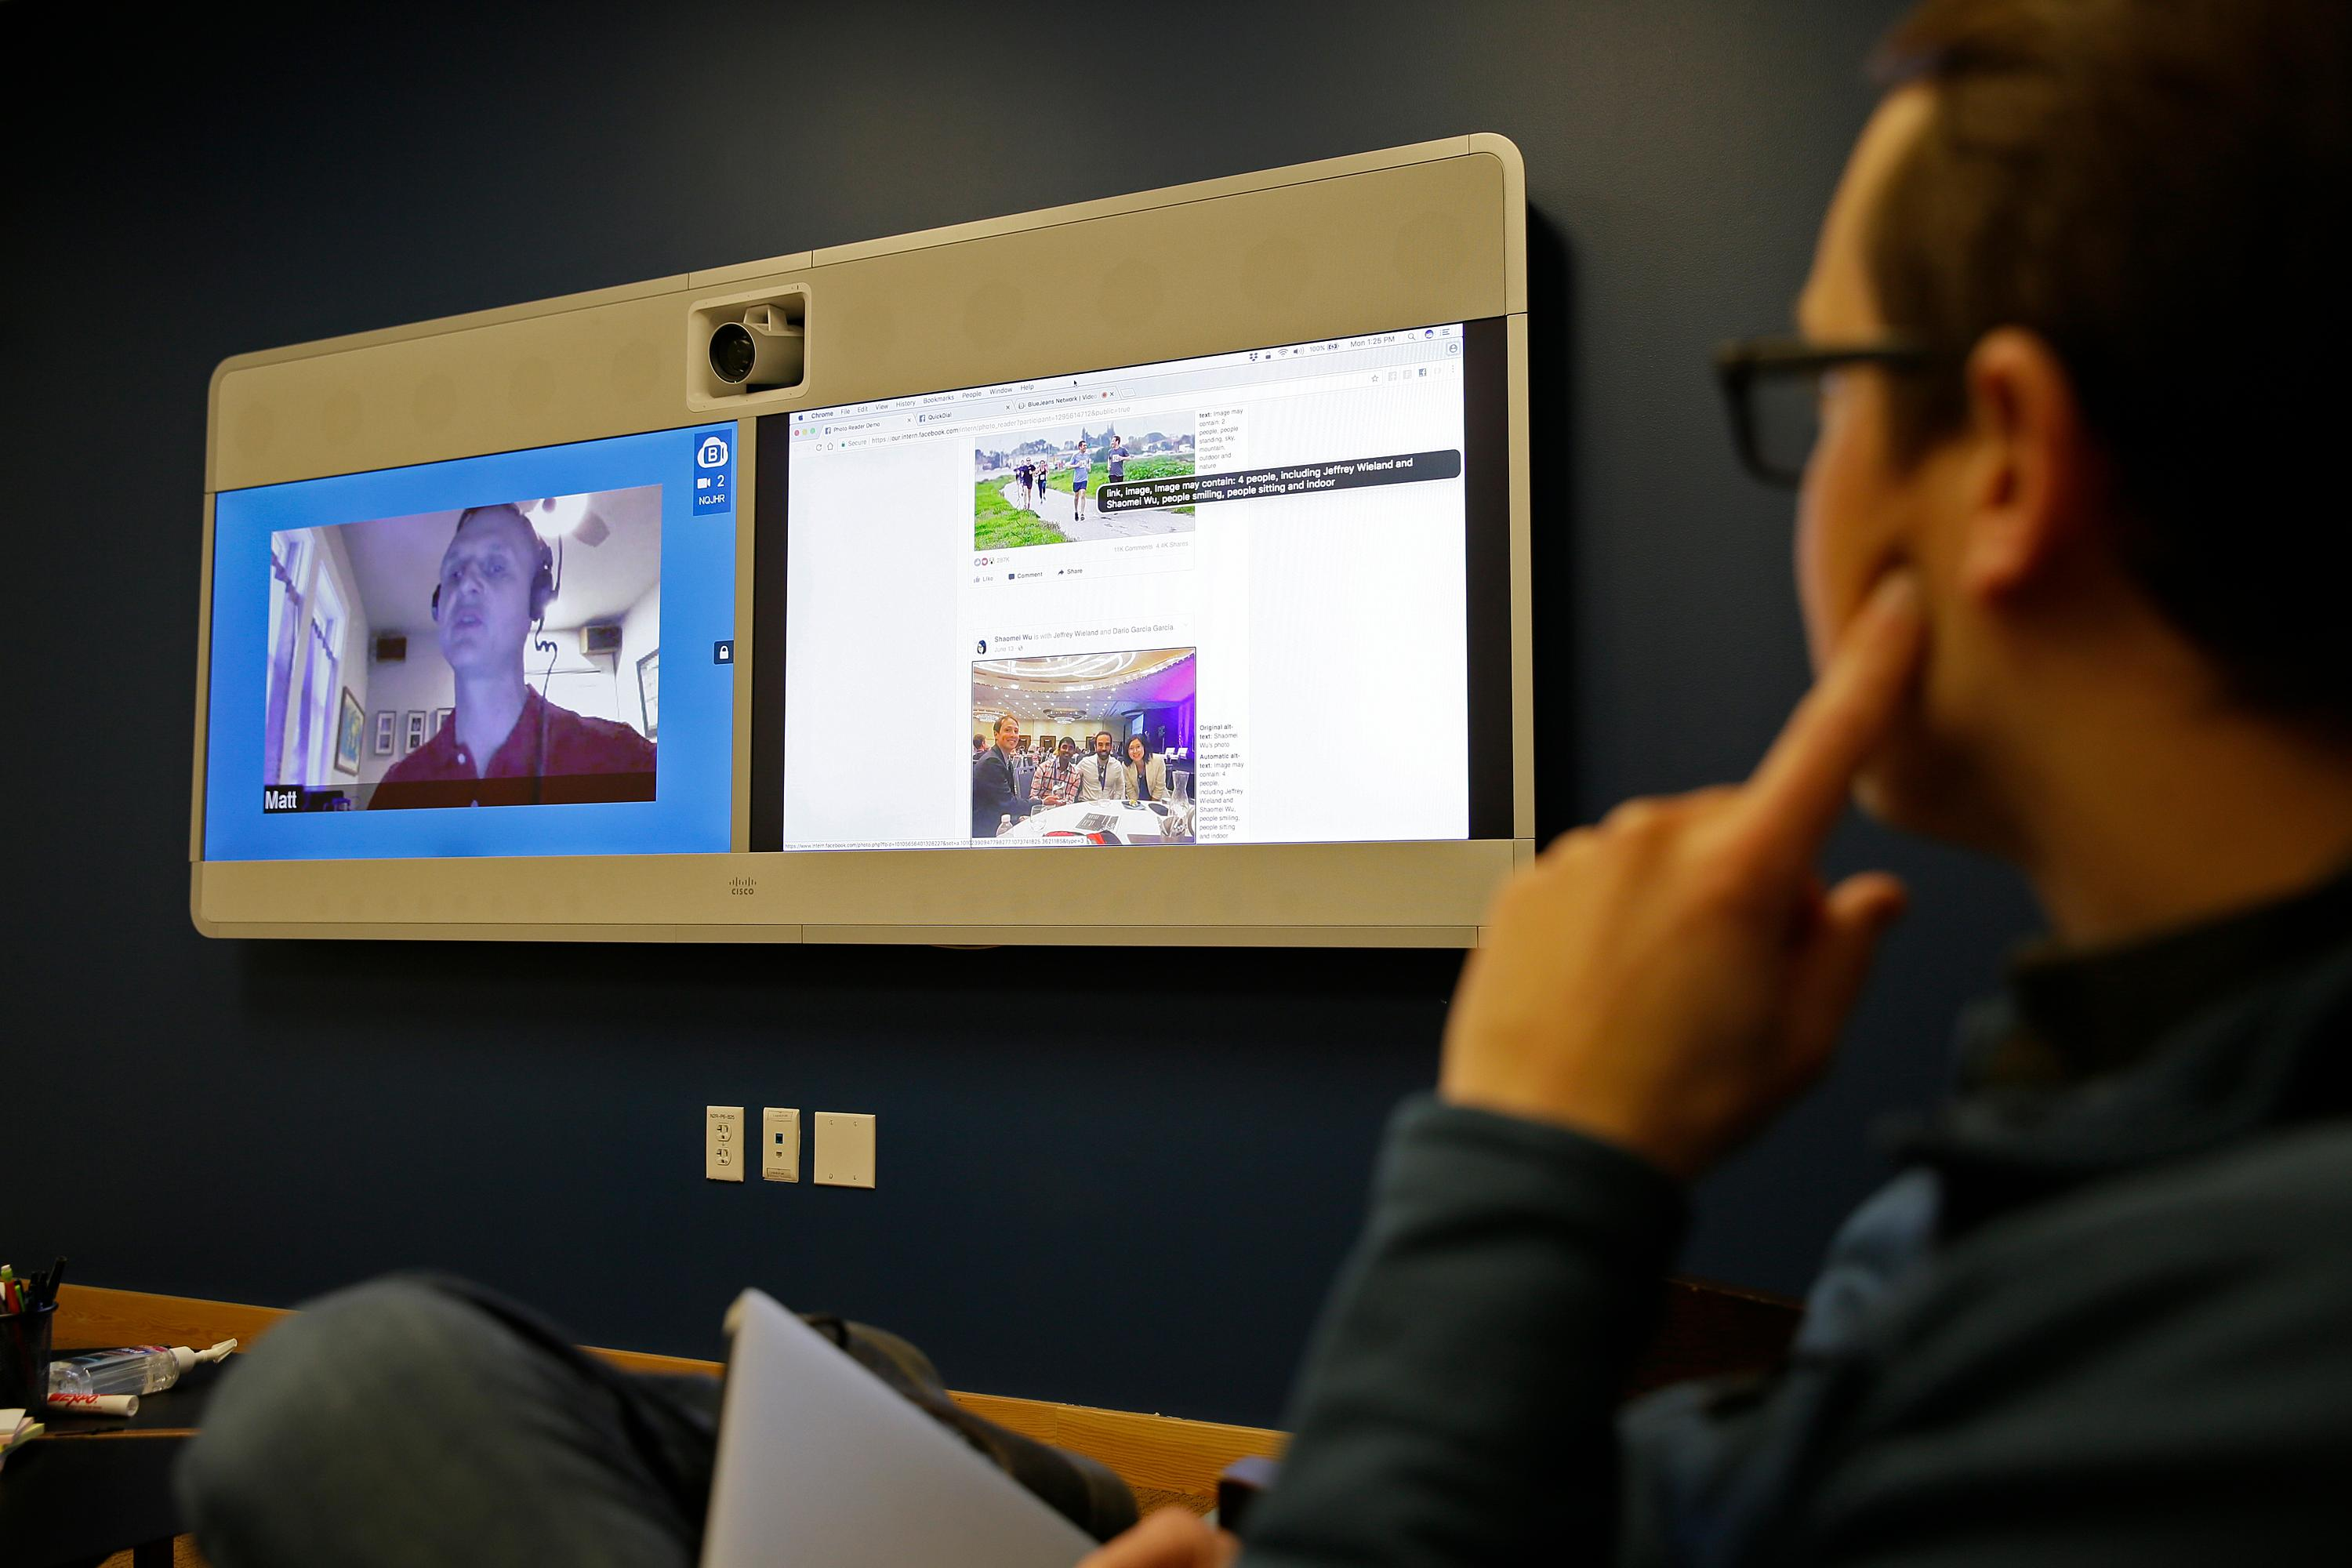 In this photo taken Monday, Dec. 18, 2017, Jeff Wieland,, right, Facebook director of accessibility, watches as engineer Matt King, who is blind, demonstrates facial recognition technology via a teleconference at Facebook headquarters in Menlo Park, Calif. Facebook is unveiling a new AI-powered feature just in time for alcohol-filled holiday parties: you can now see untagged pictures of your face on your friend's news feeds and ask the poster to remove them. (AP Photo/Eric Risberg)